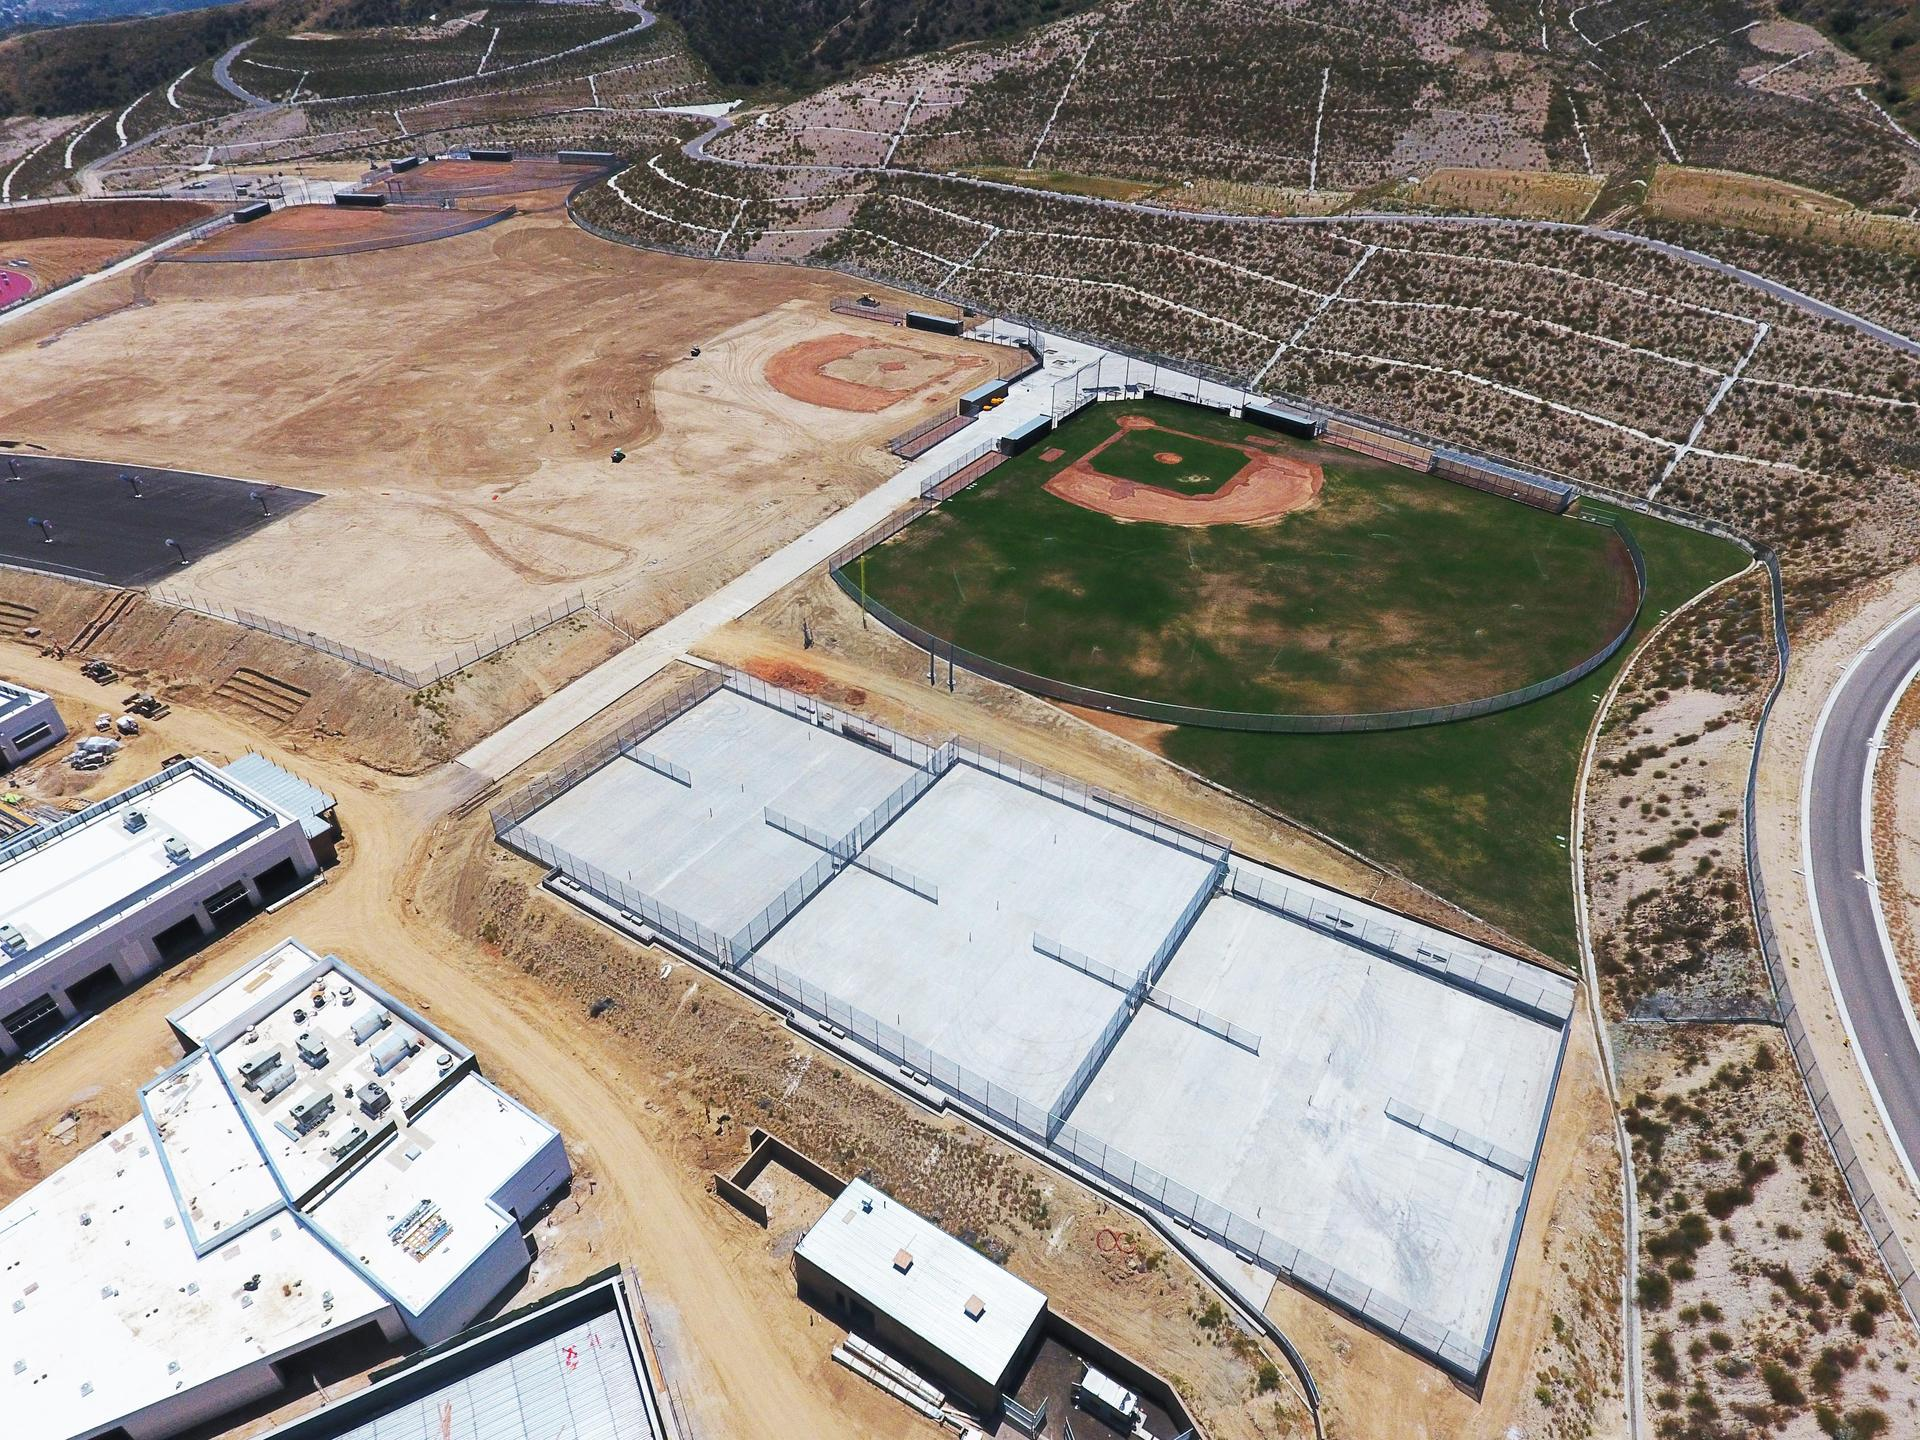 Aerial view of the Castaic High School baseball diamond and progress on other field sports practice areas